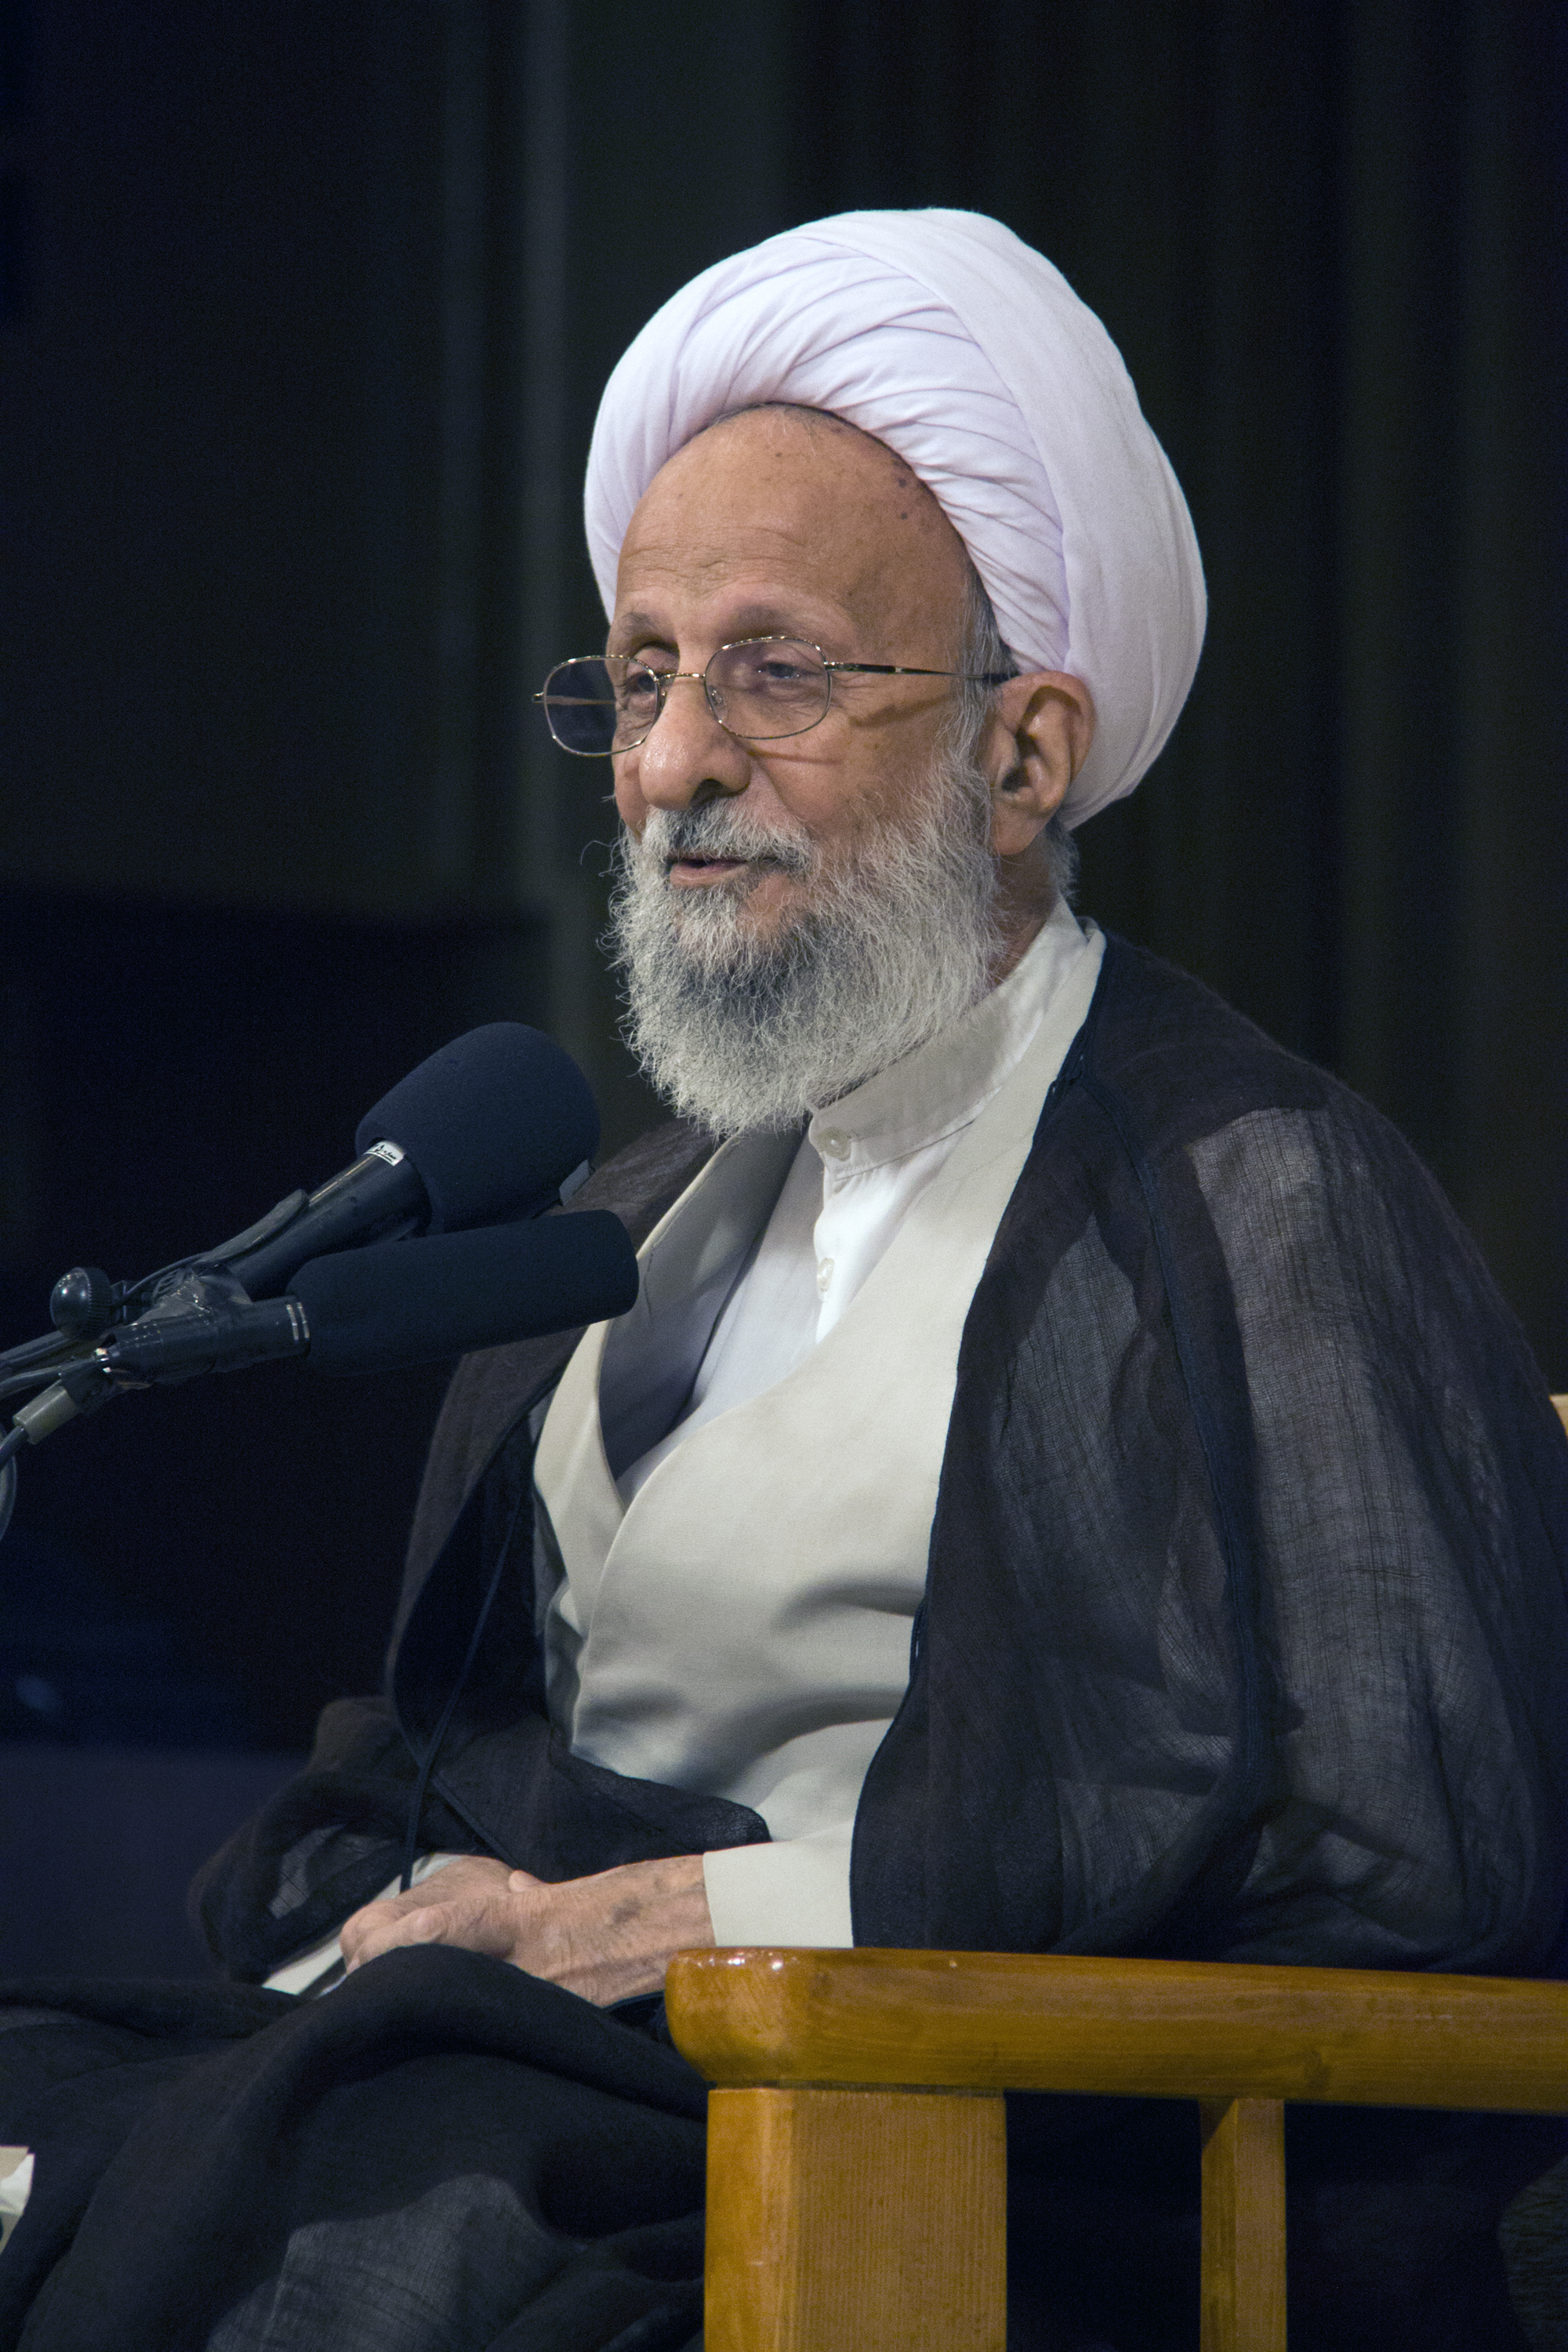 Mohammad-Taqi Mesbah-Yazdi in 2016  Mostafameraji [CC BY-SA 4.0 (https://creativecommons.org/licenses/by-sa/4.0)], from Wikimedia Commons